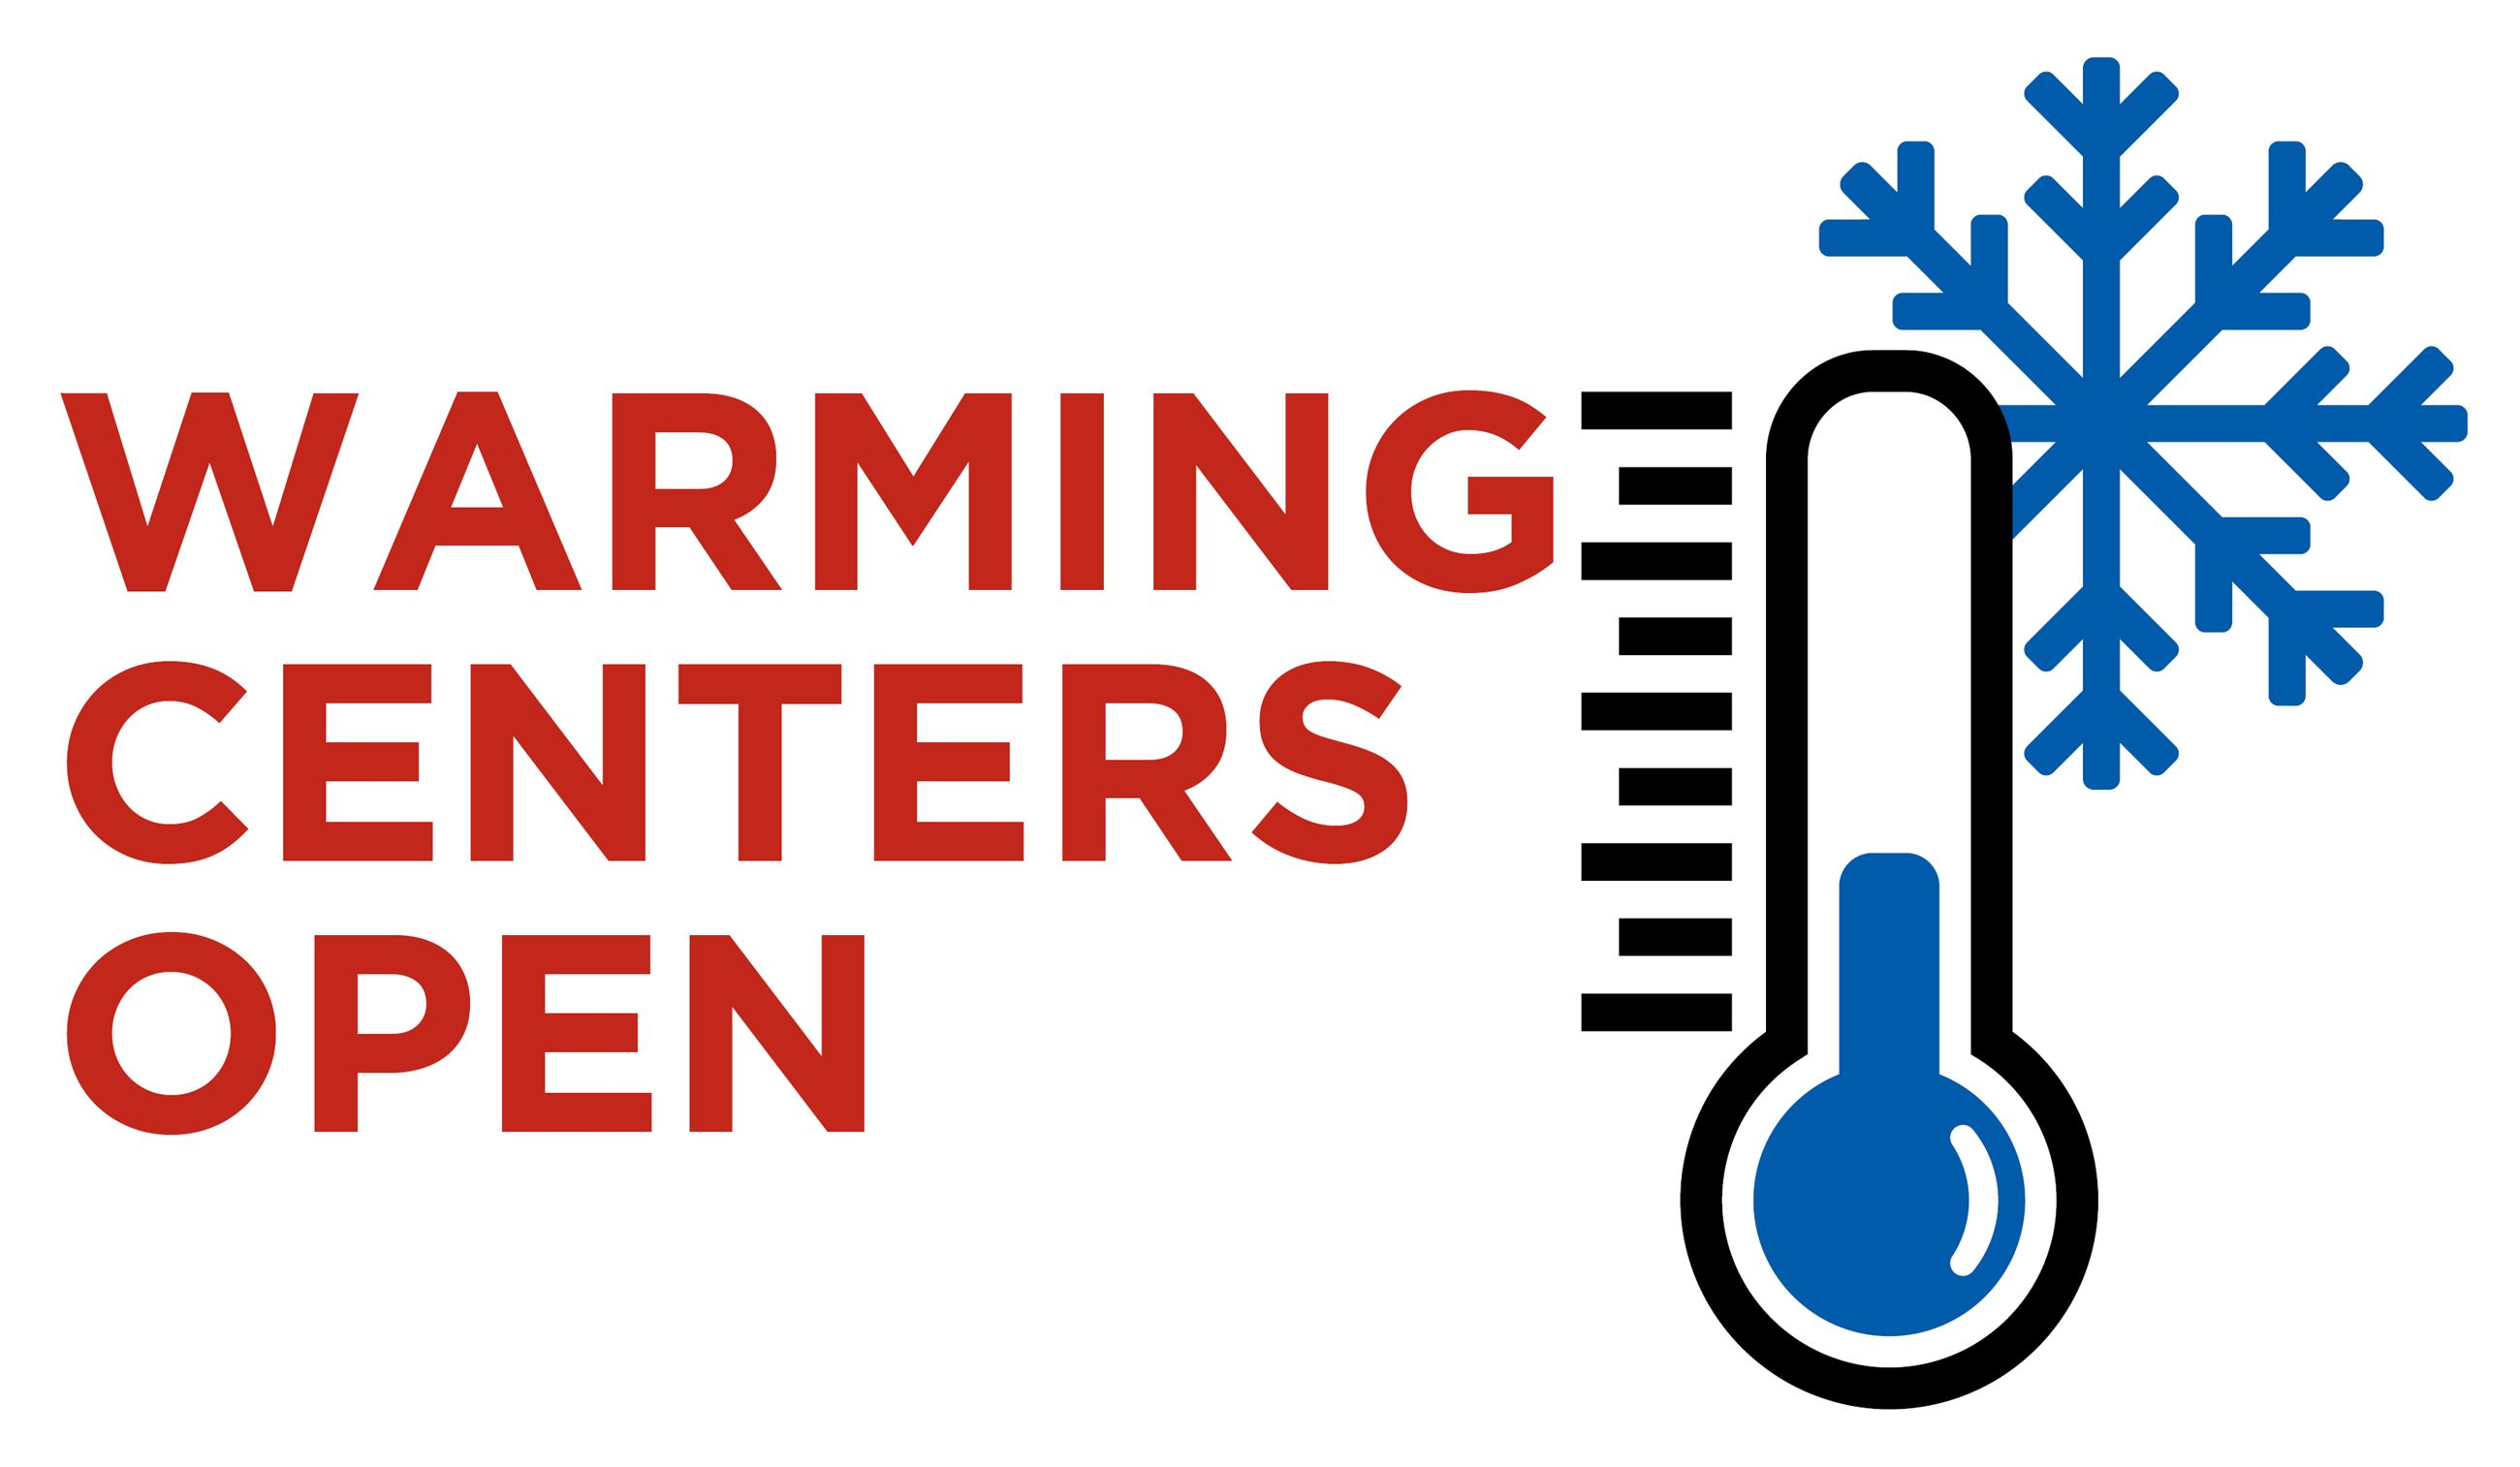 Warming Centers - New